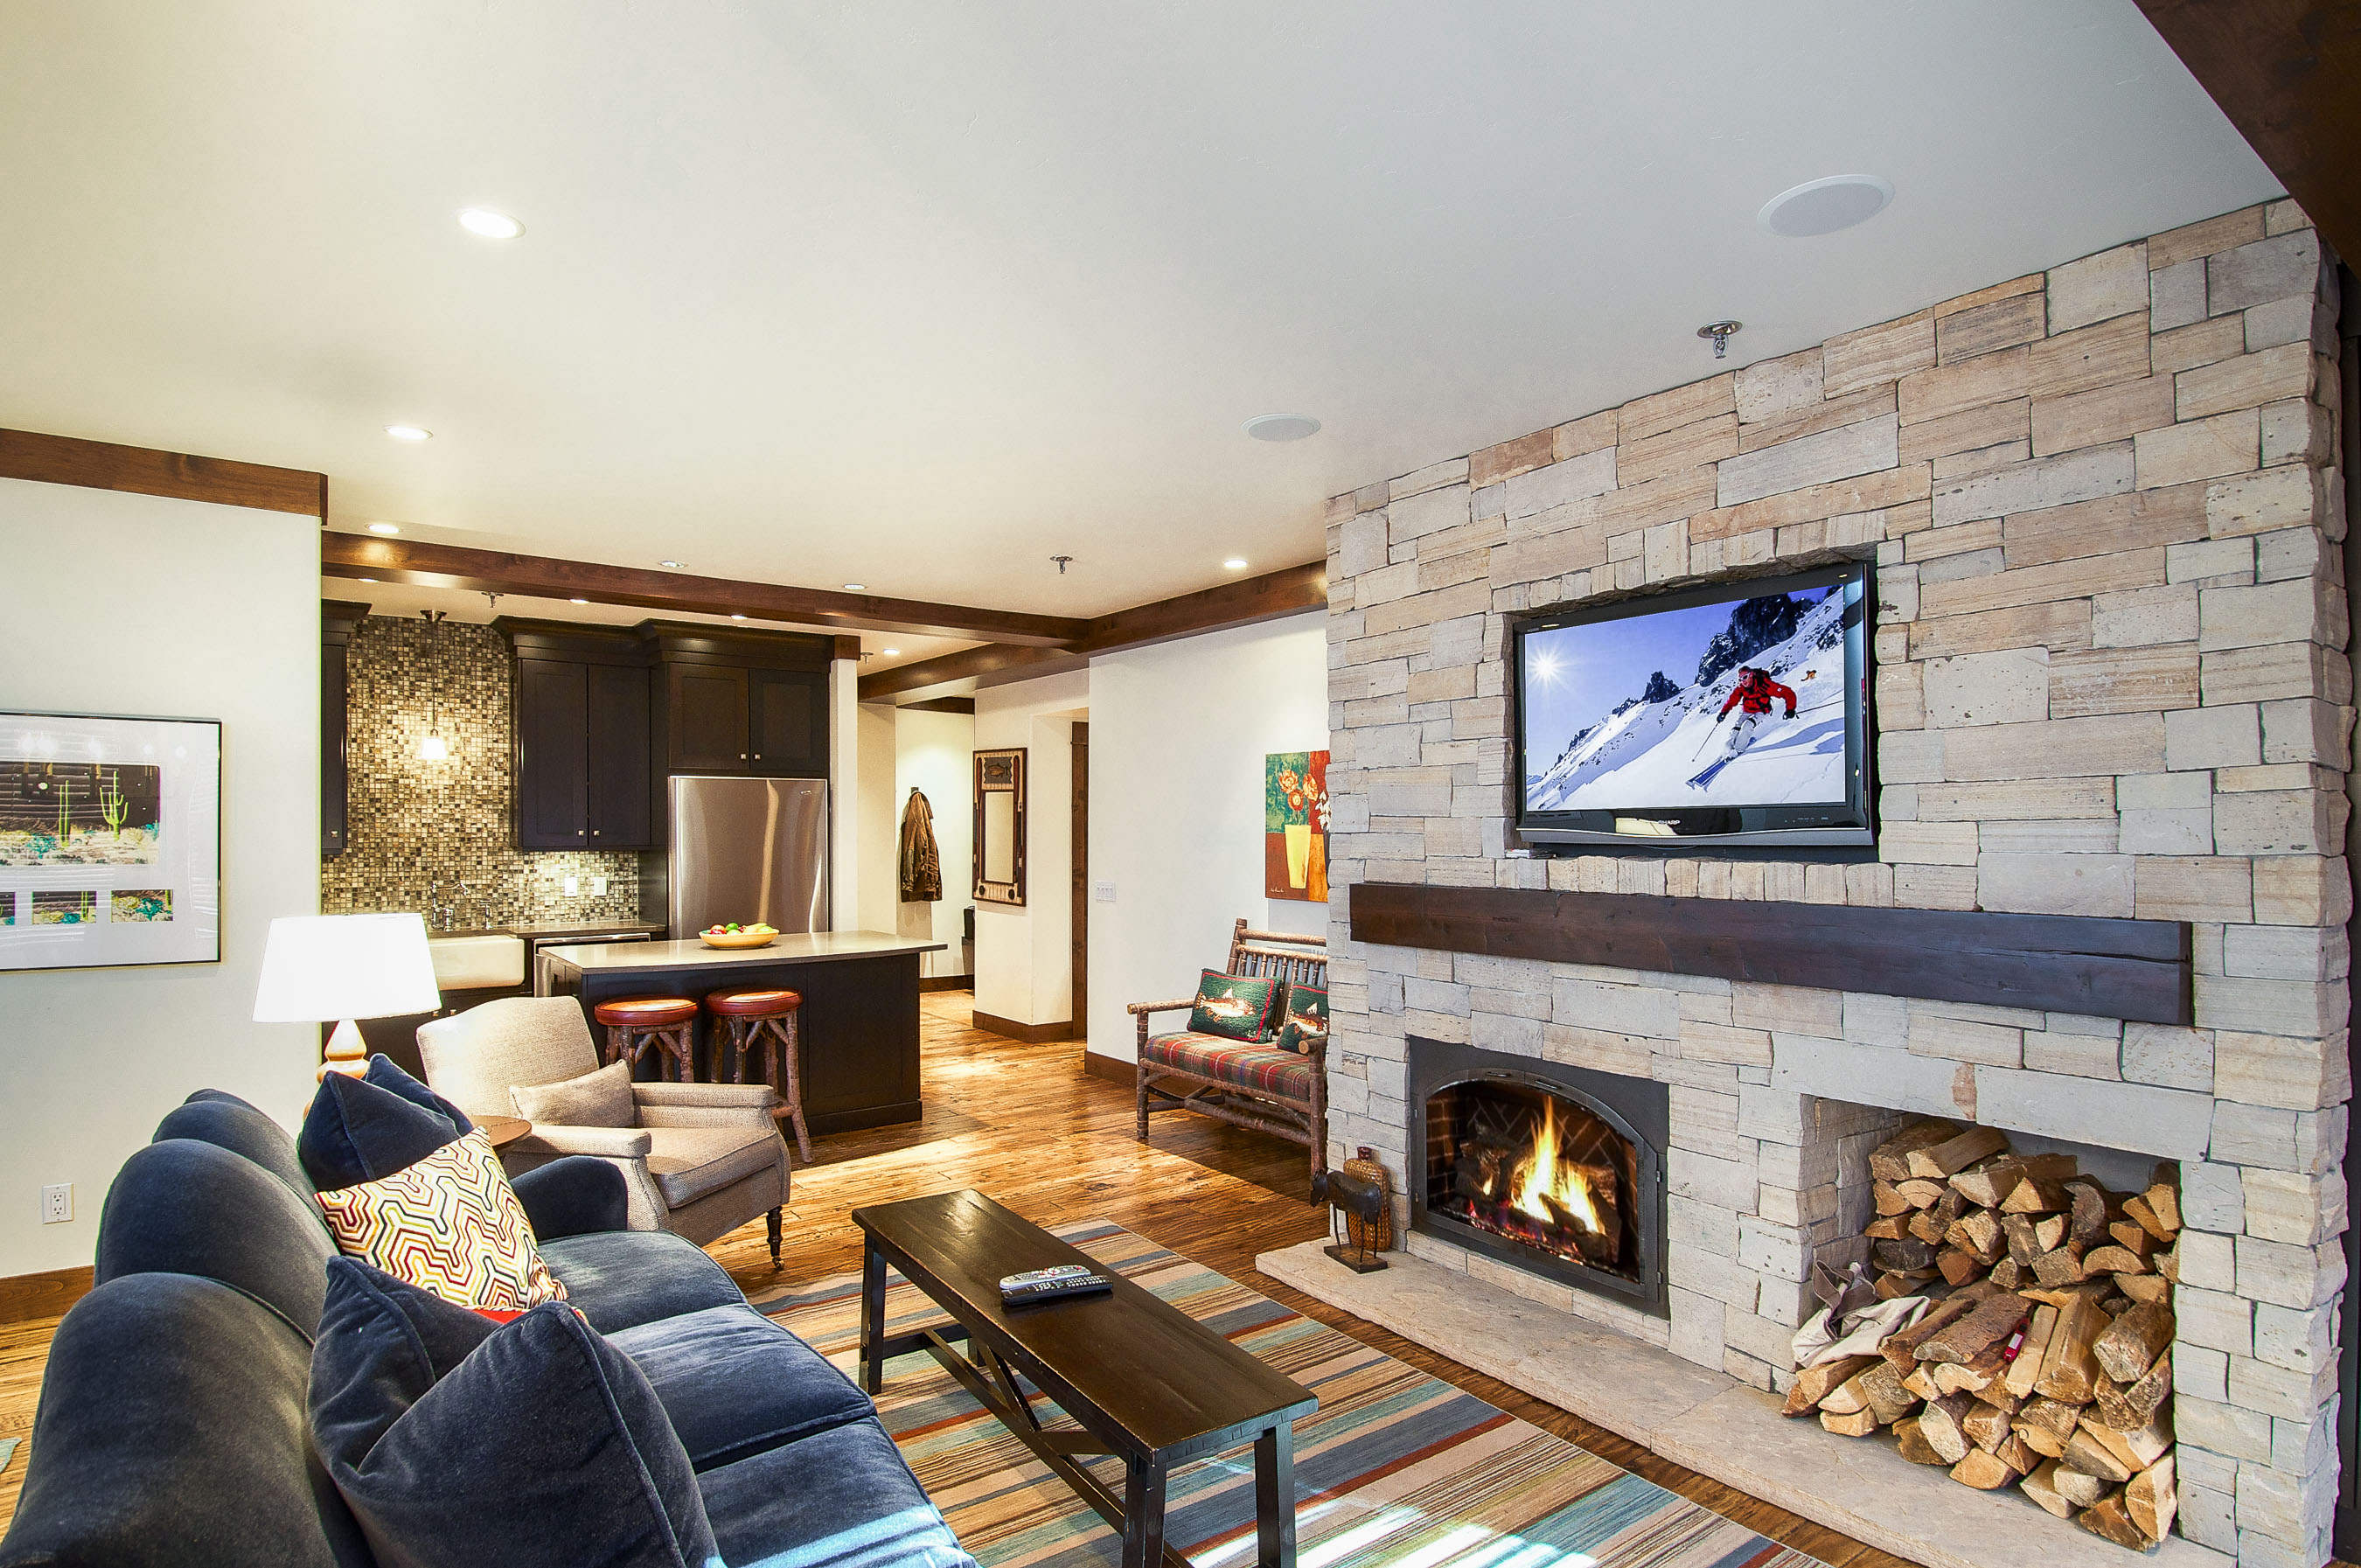 Copropriété pour l Vente à Larger than Most 425 Wood Road, Unit 20 Snowmass Village, Colorado, 81615 États-Unis